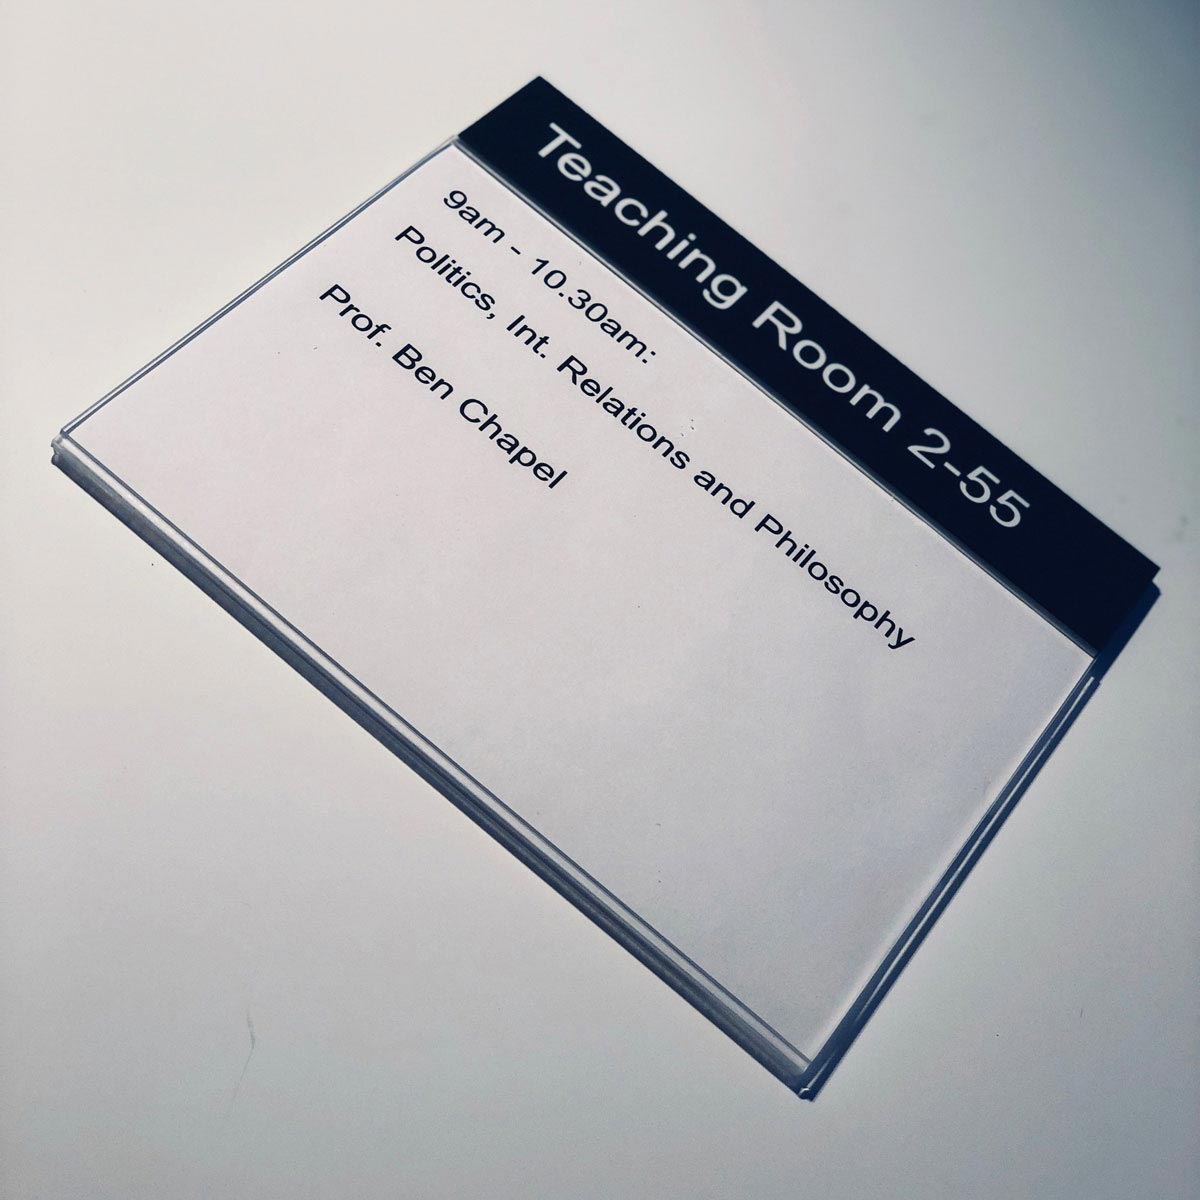 MSS A5 Wallet Sign for graphic paper insert - Static header information for room details